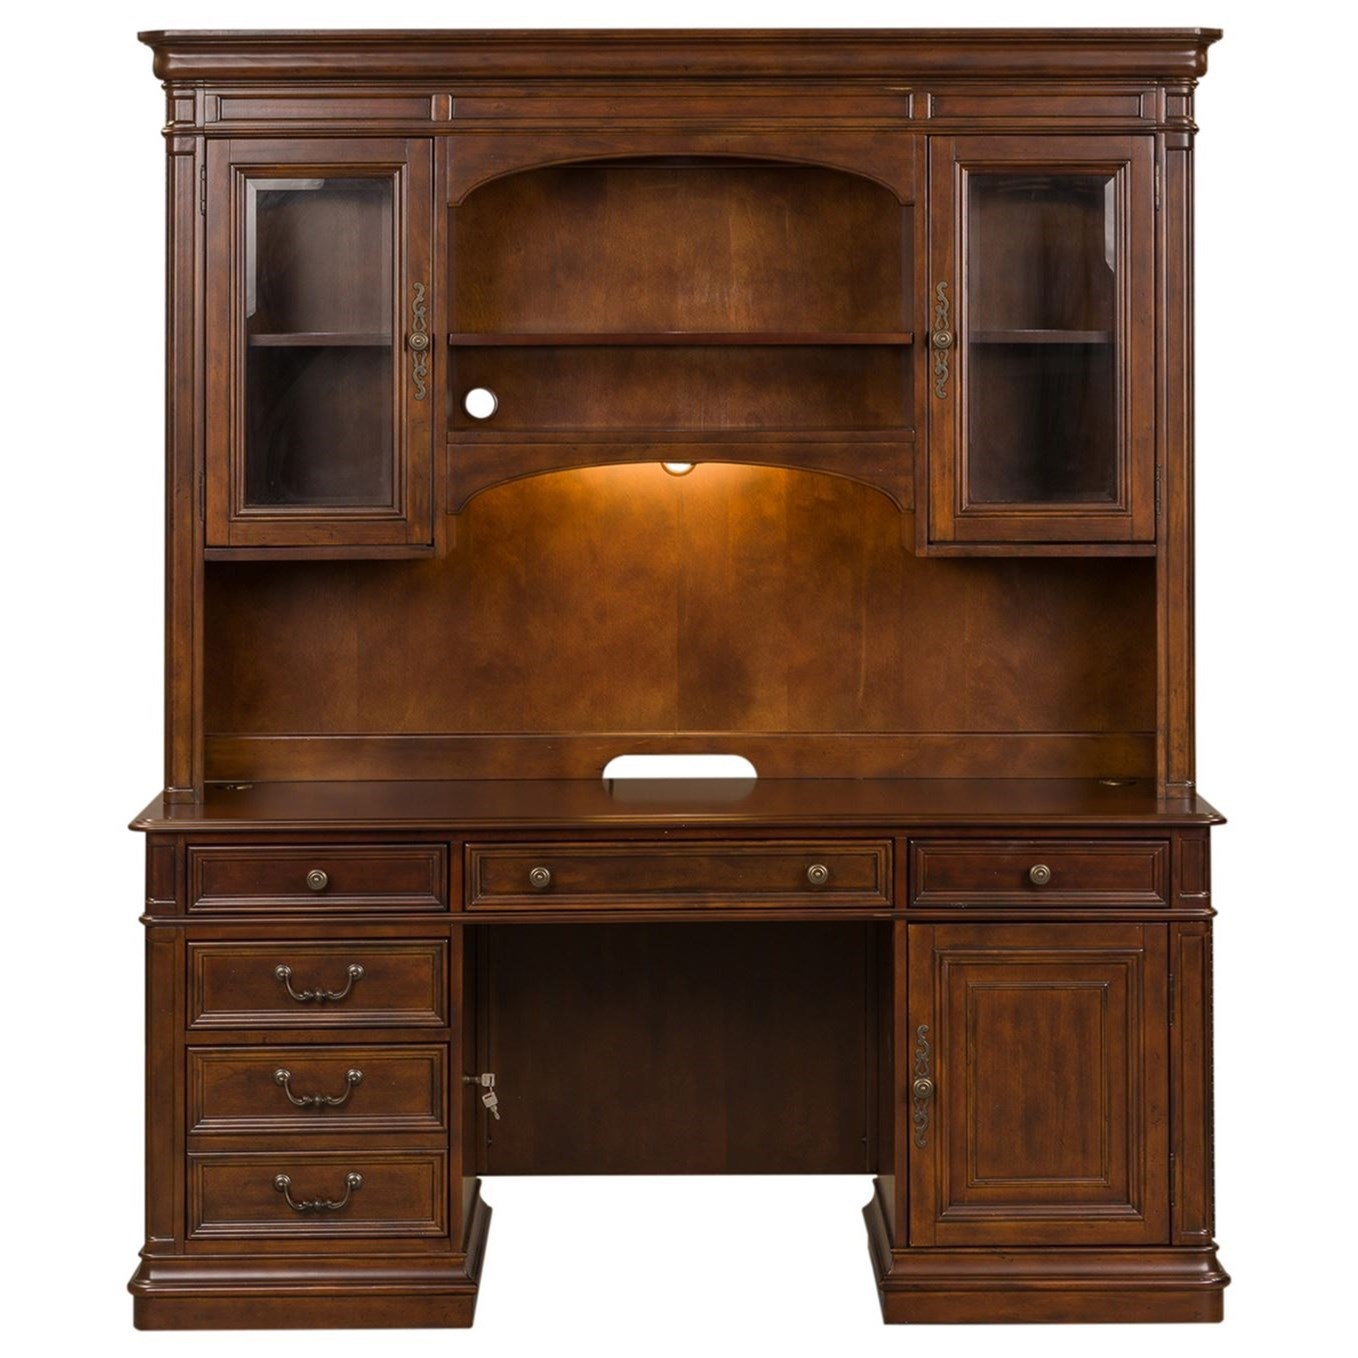 Credenza and Hutch